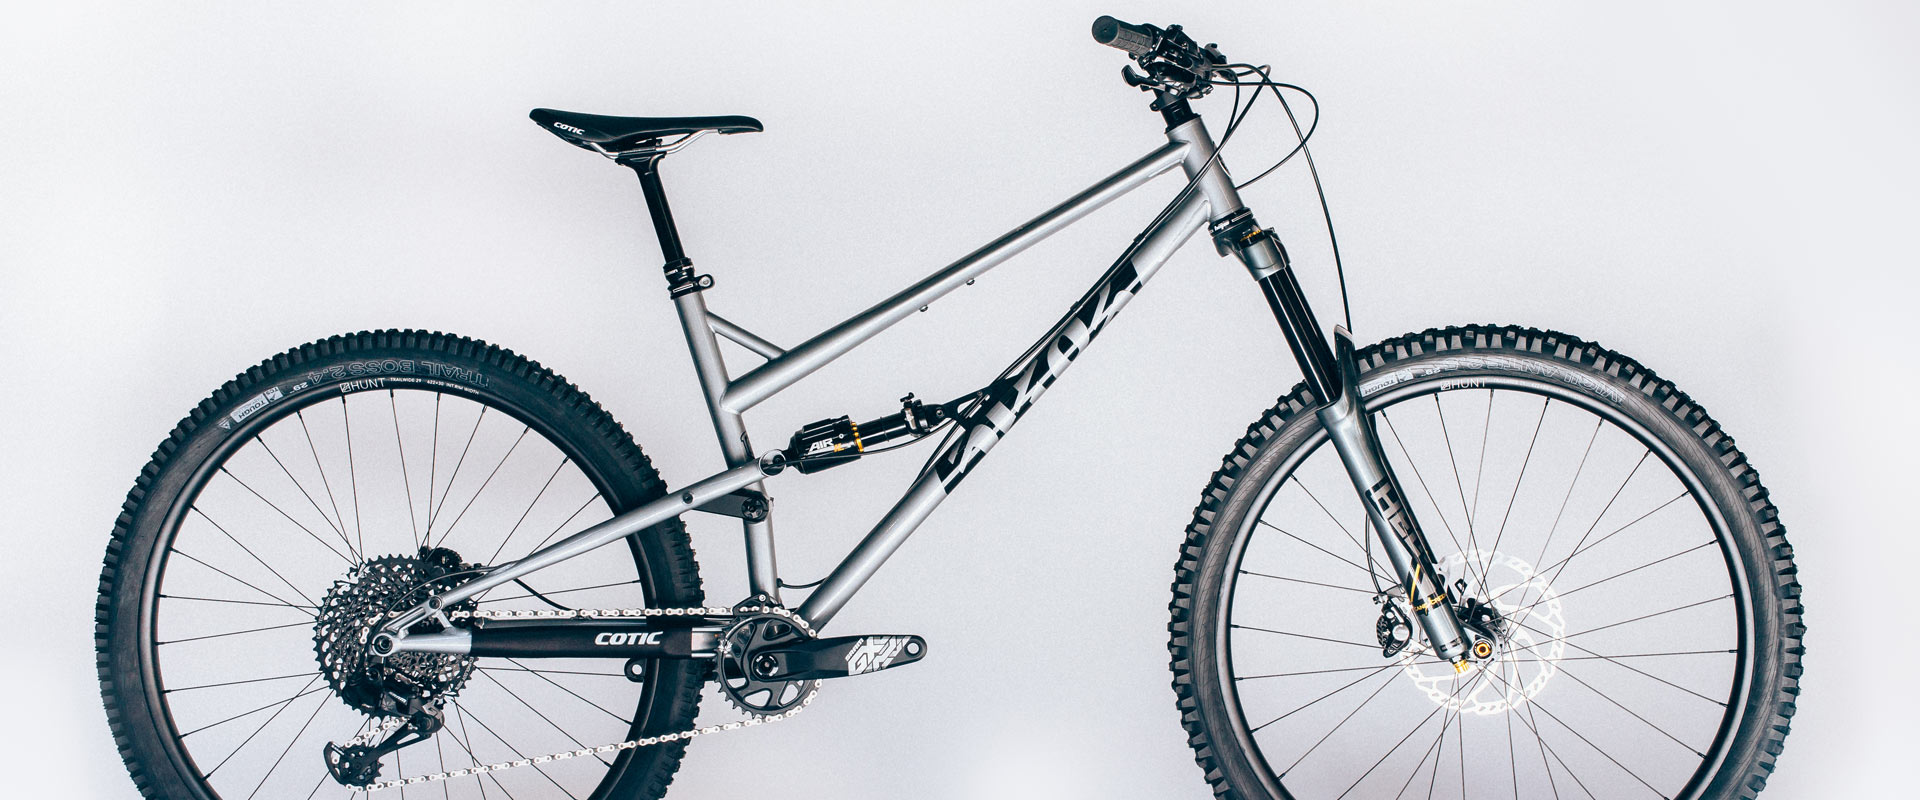 Cotic RocketMAX, Reynolds 853, Steel Full Suspension